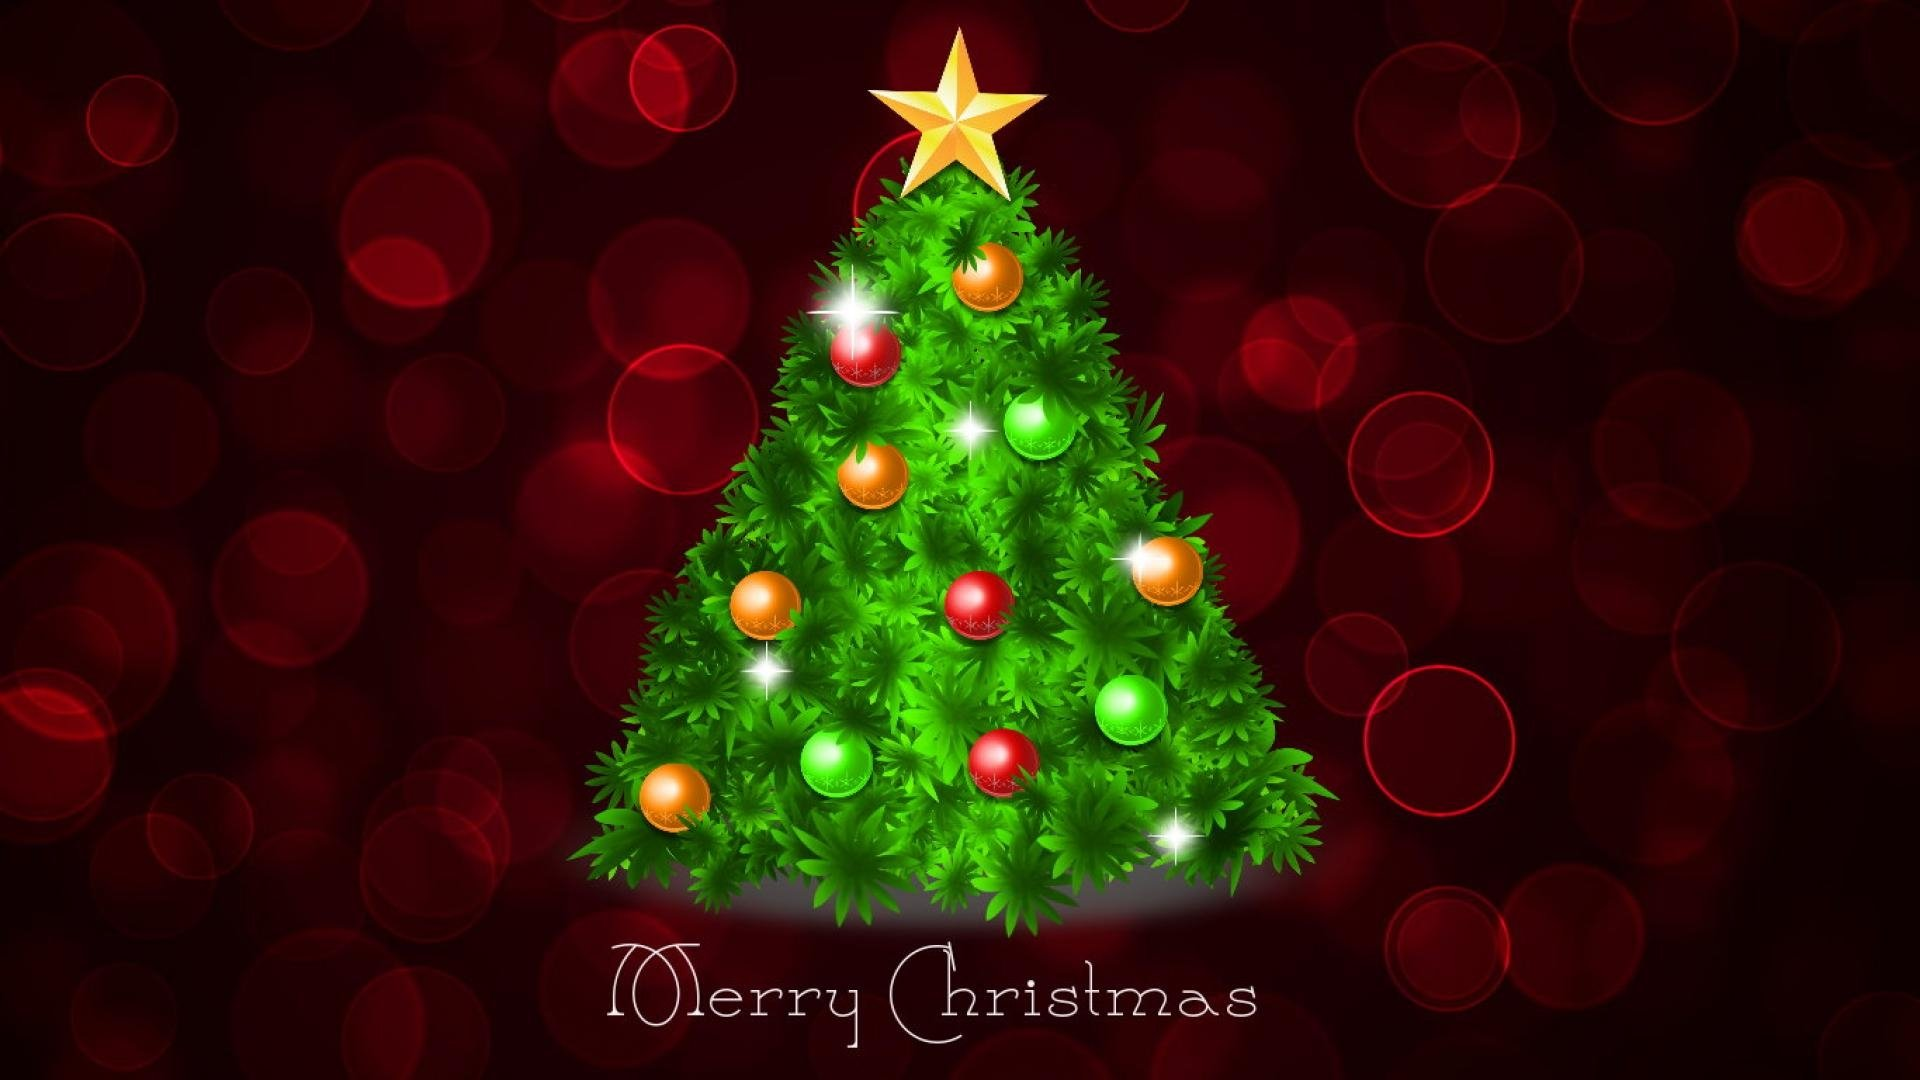 Holiday - Christmas  Merry Christmas Christmas Ornaments Holiday Christmas Tree Red Artistic Wallpaper